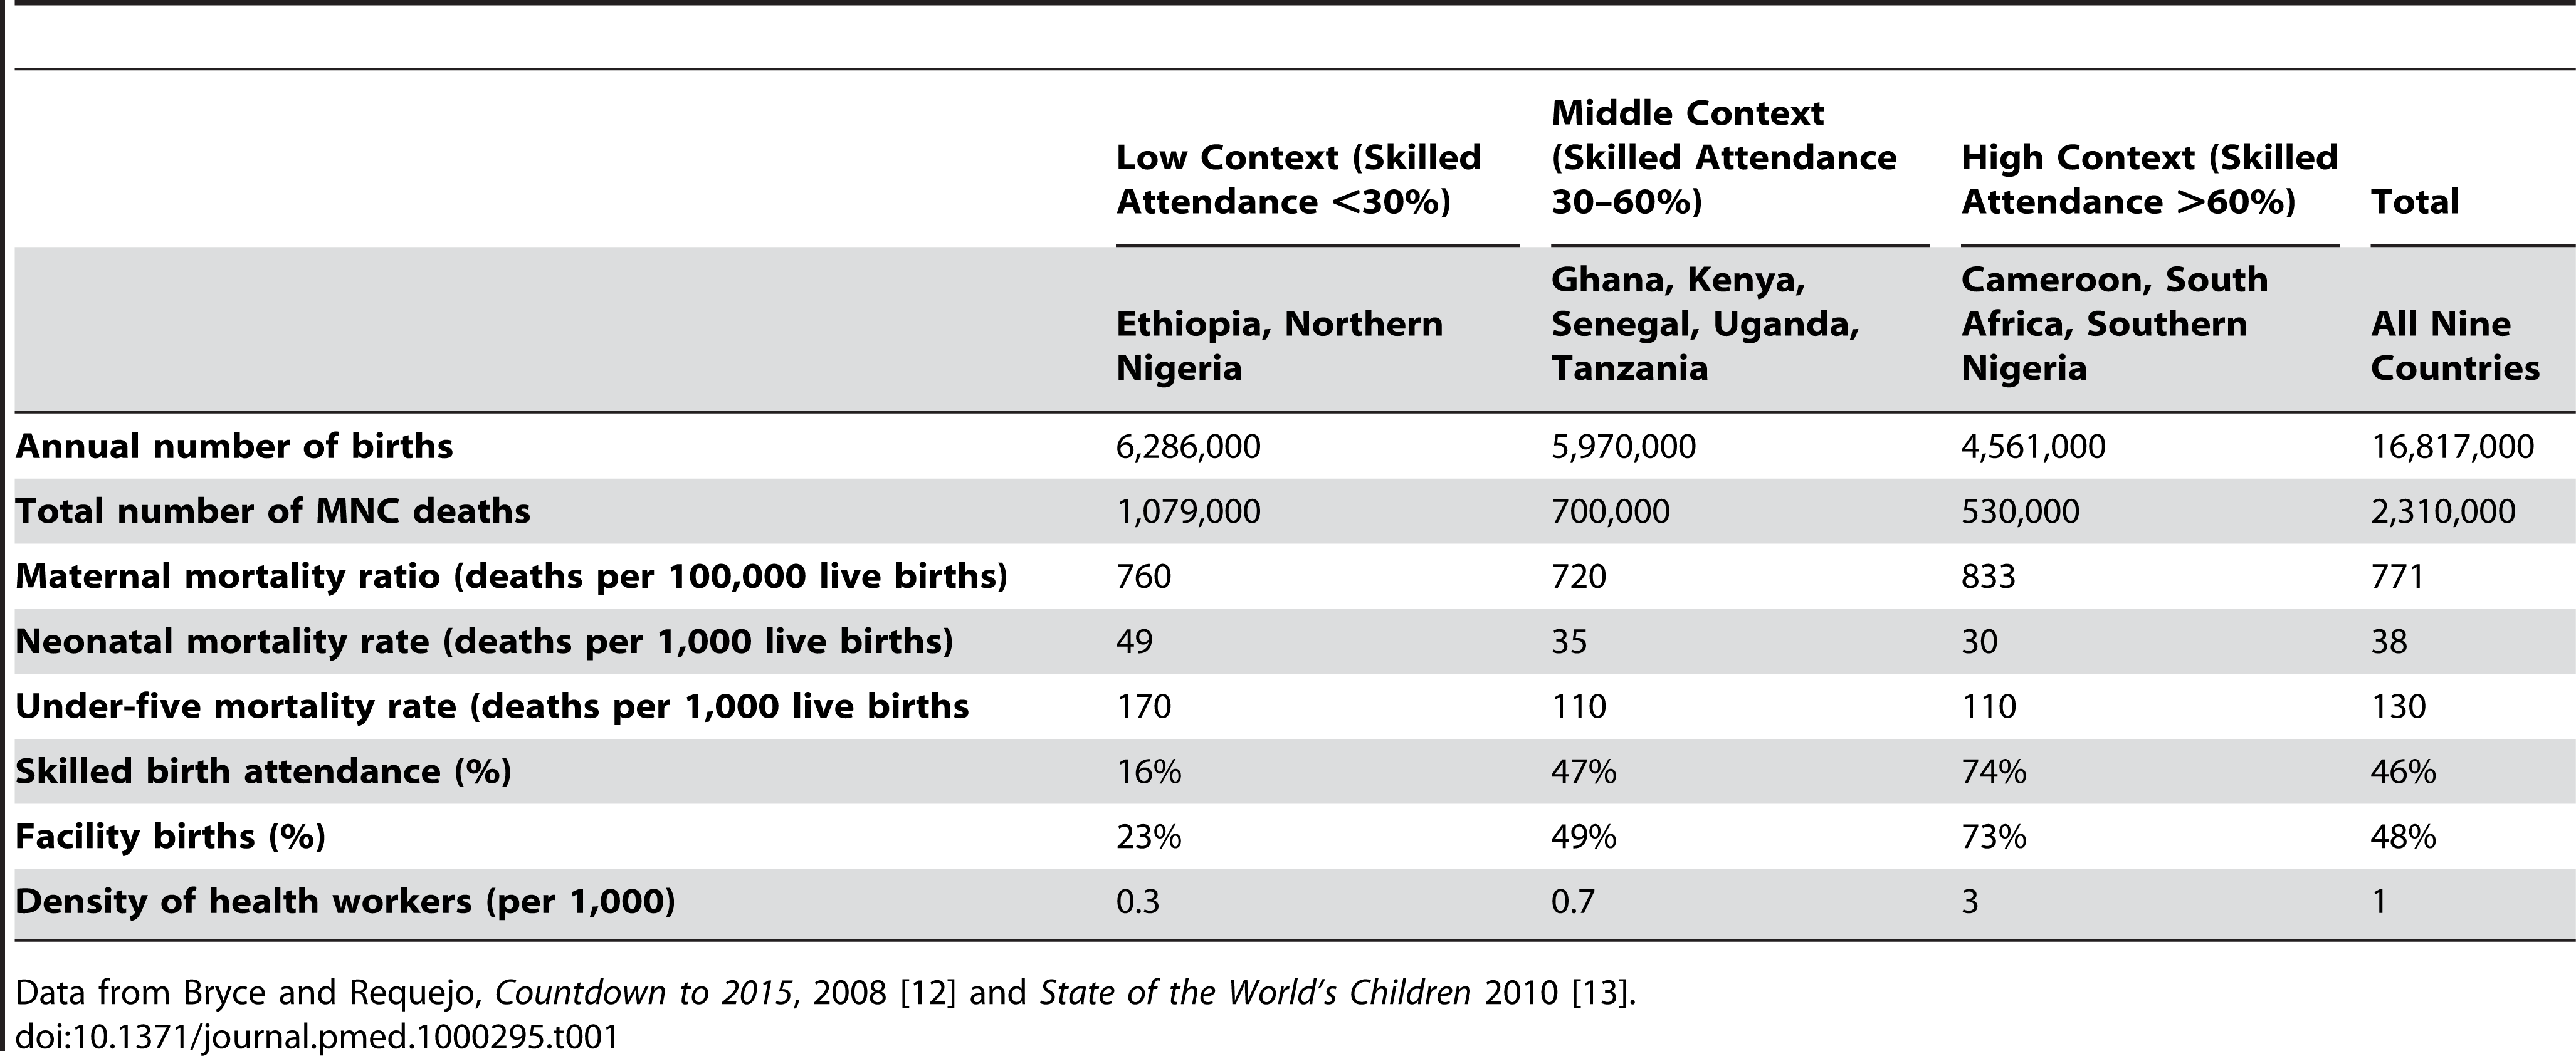 Summary of the nine example countries split by level of health system context, around the year 2008.